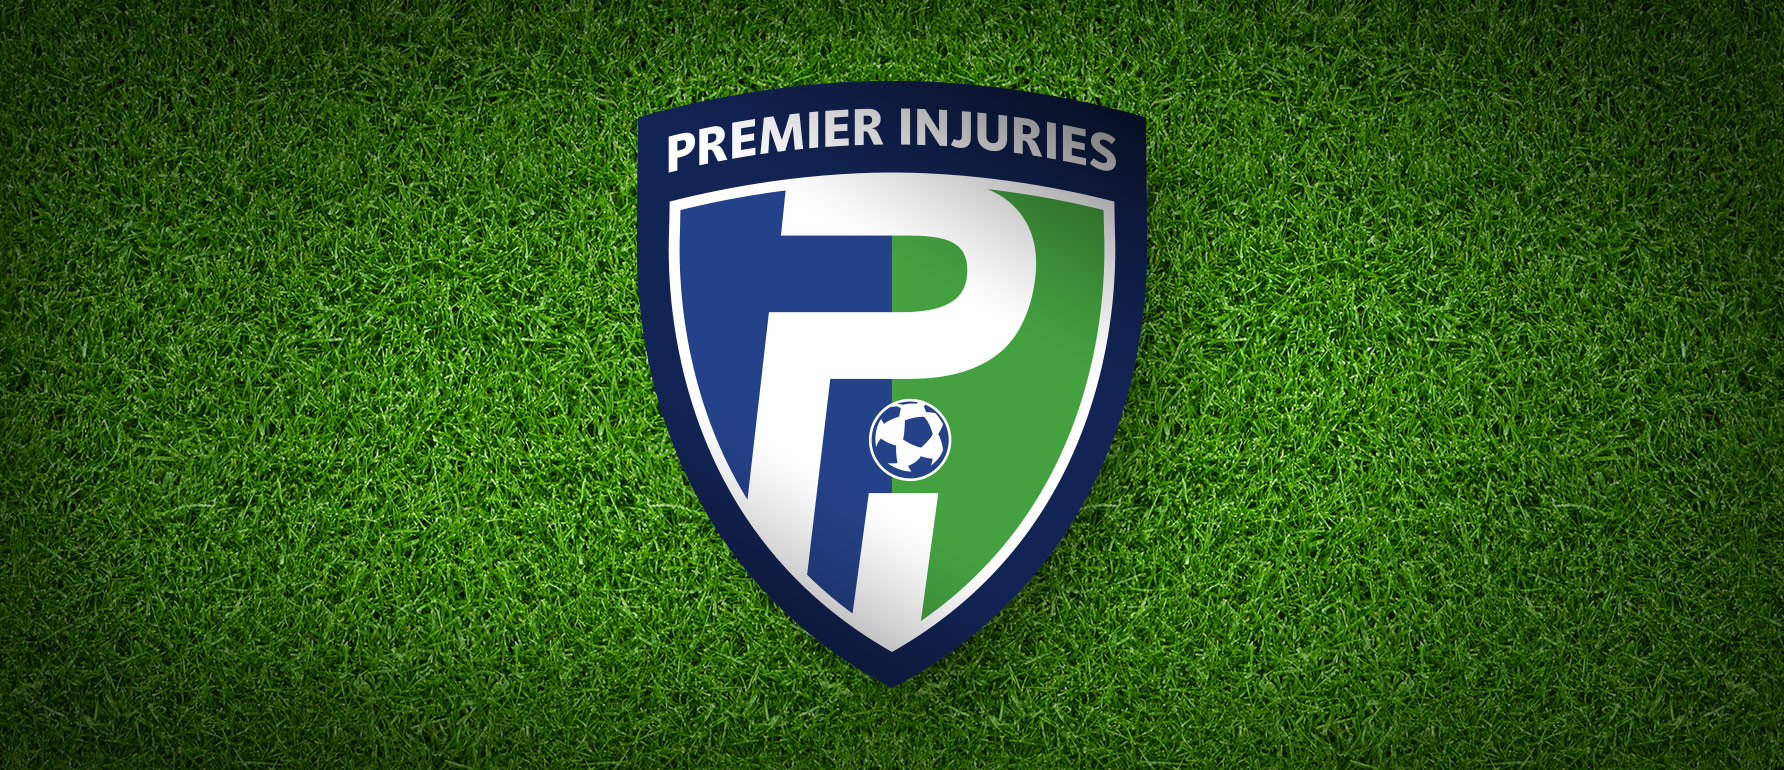 Branding and Identity for Premier Injuries